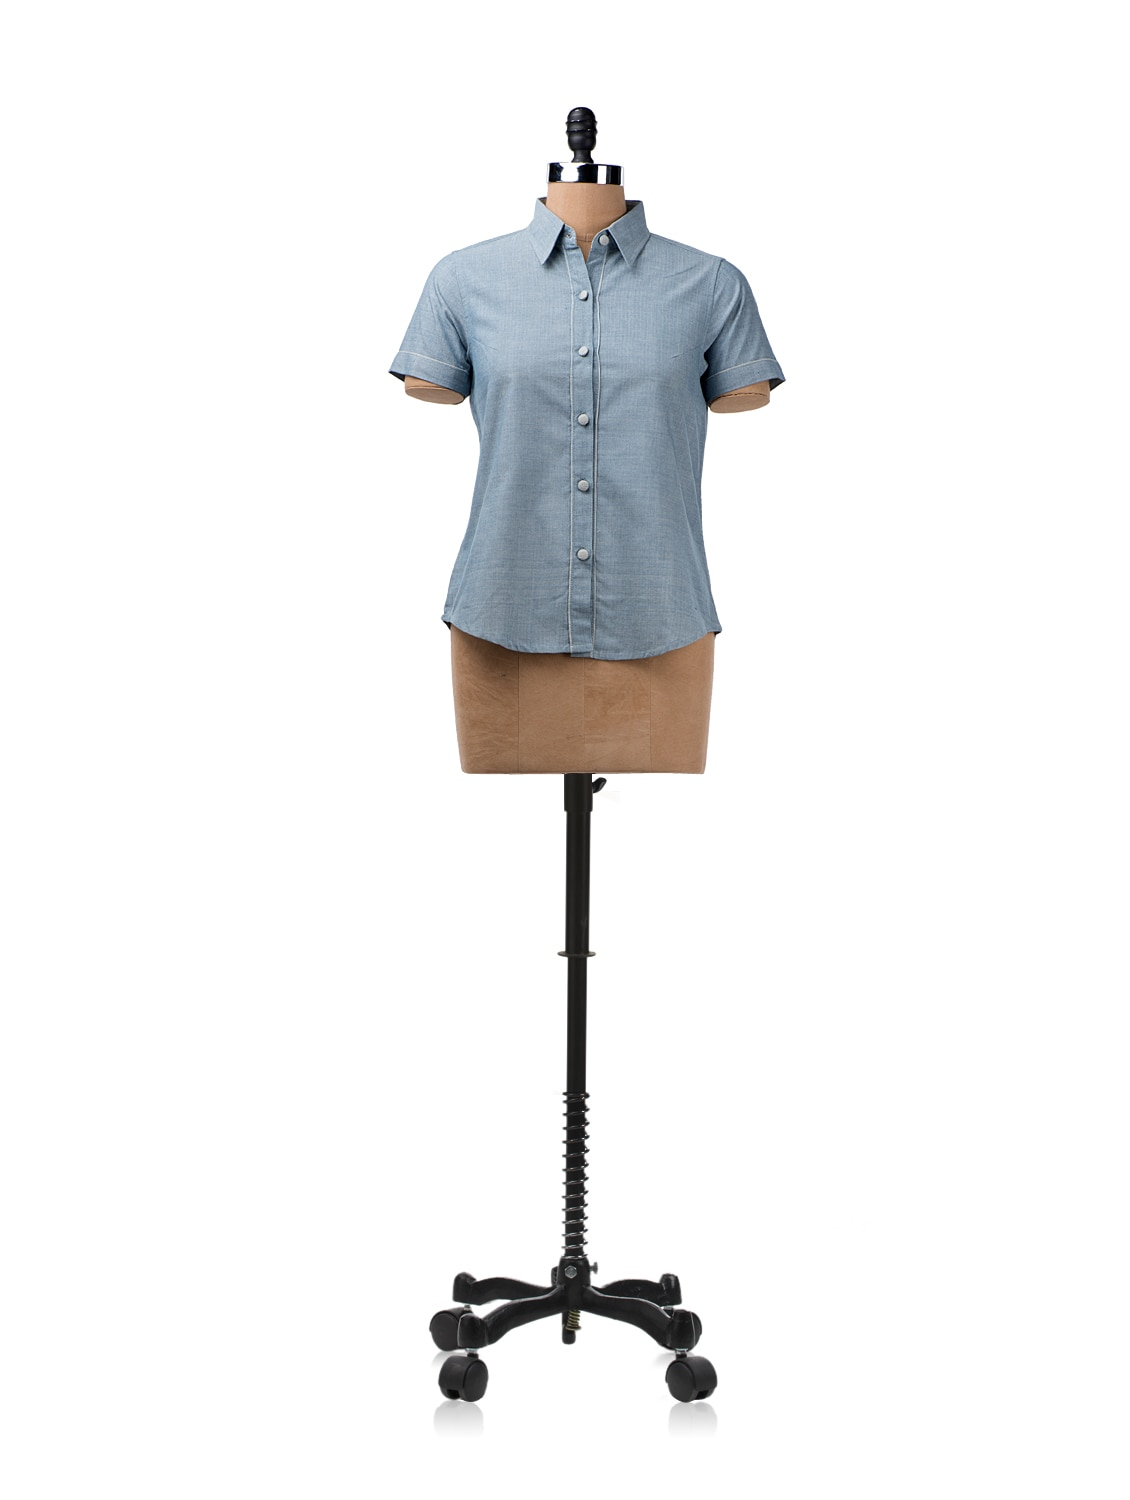 Blue Shirt With Contrasting Piping On The Button Placket - ENAH